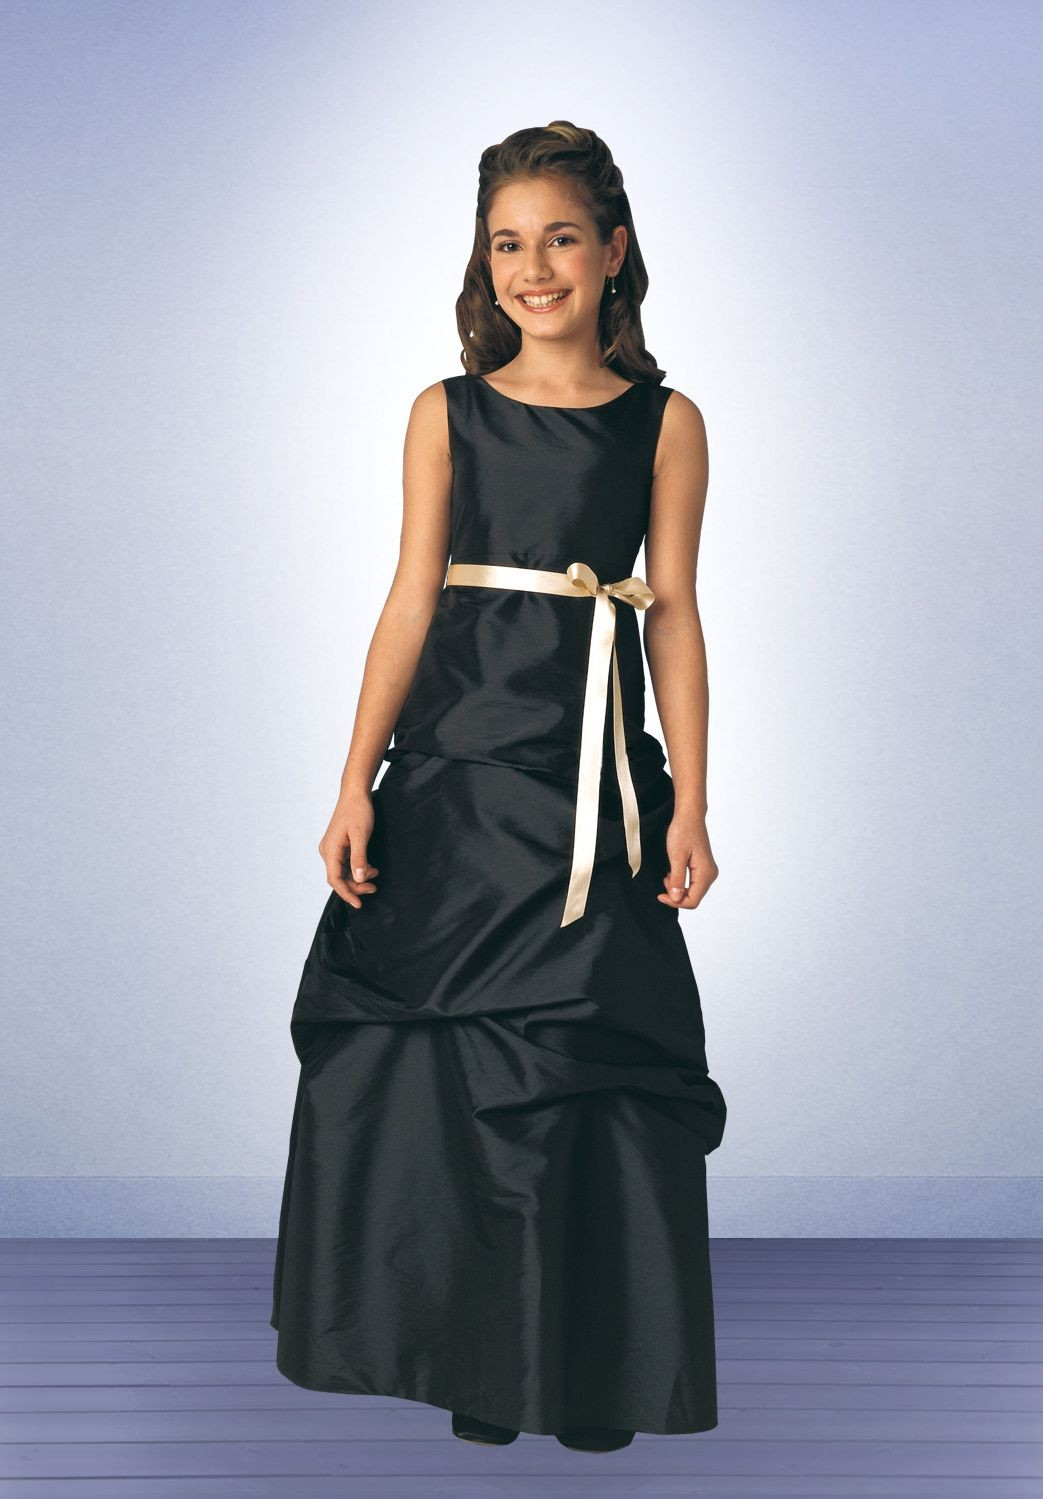 jr bridesmaid dresses black kohls wedding dresses Jr Bridesmaid Dresses Black 31